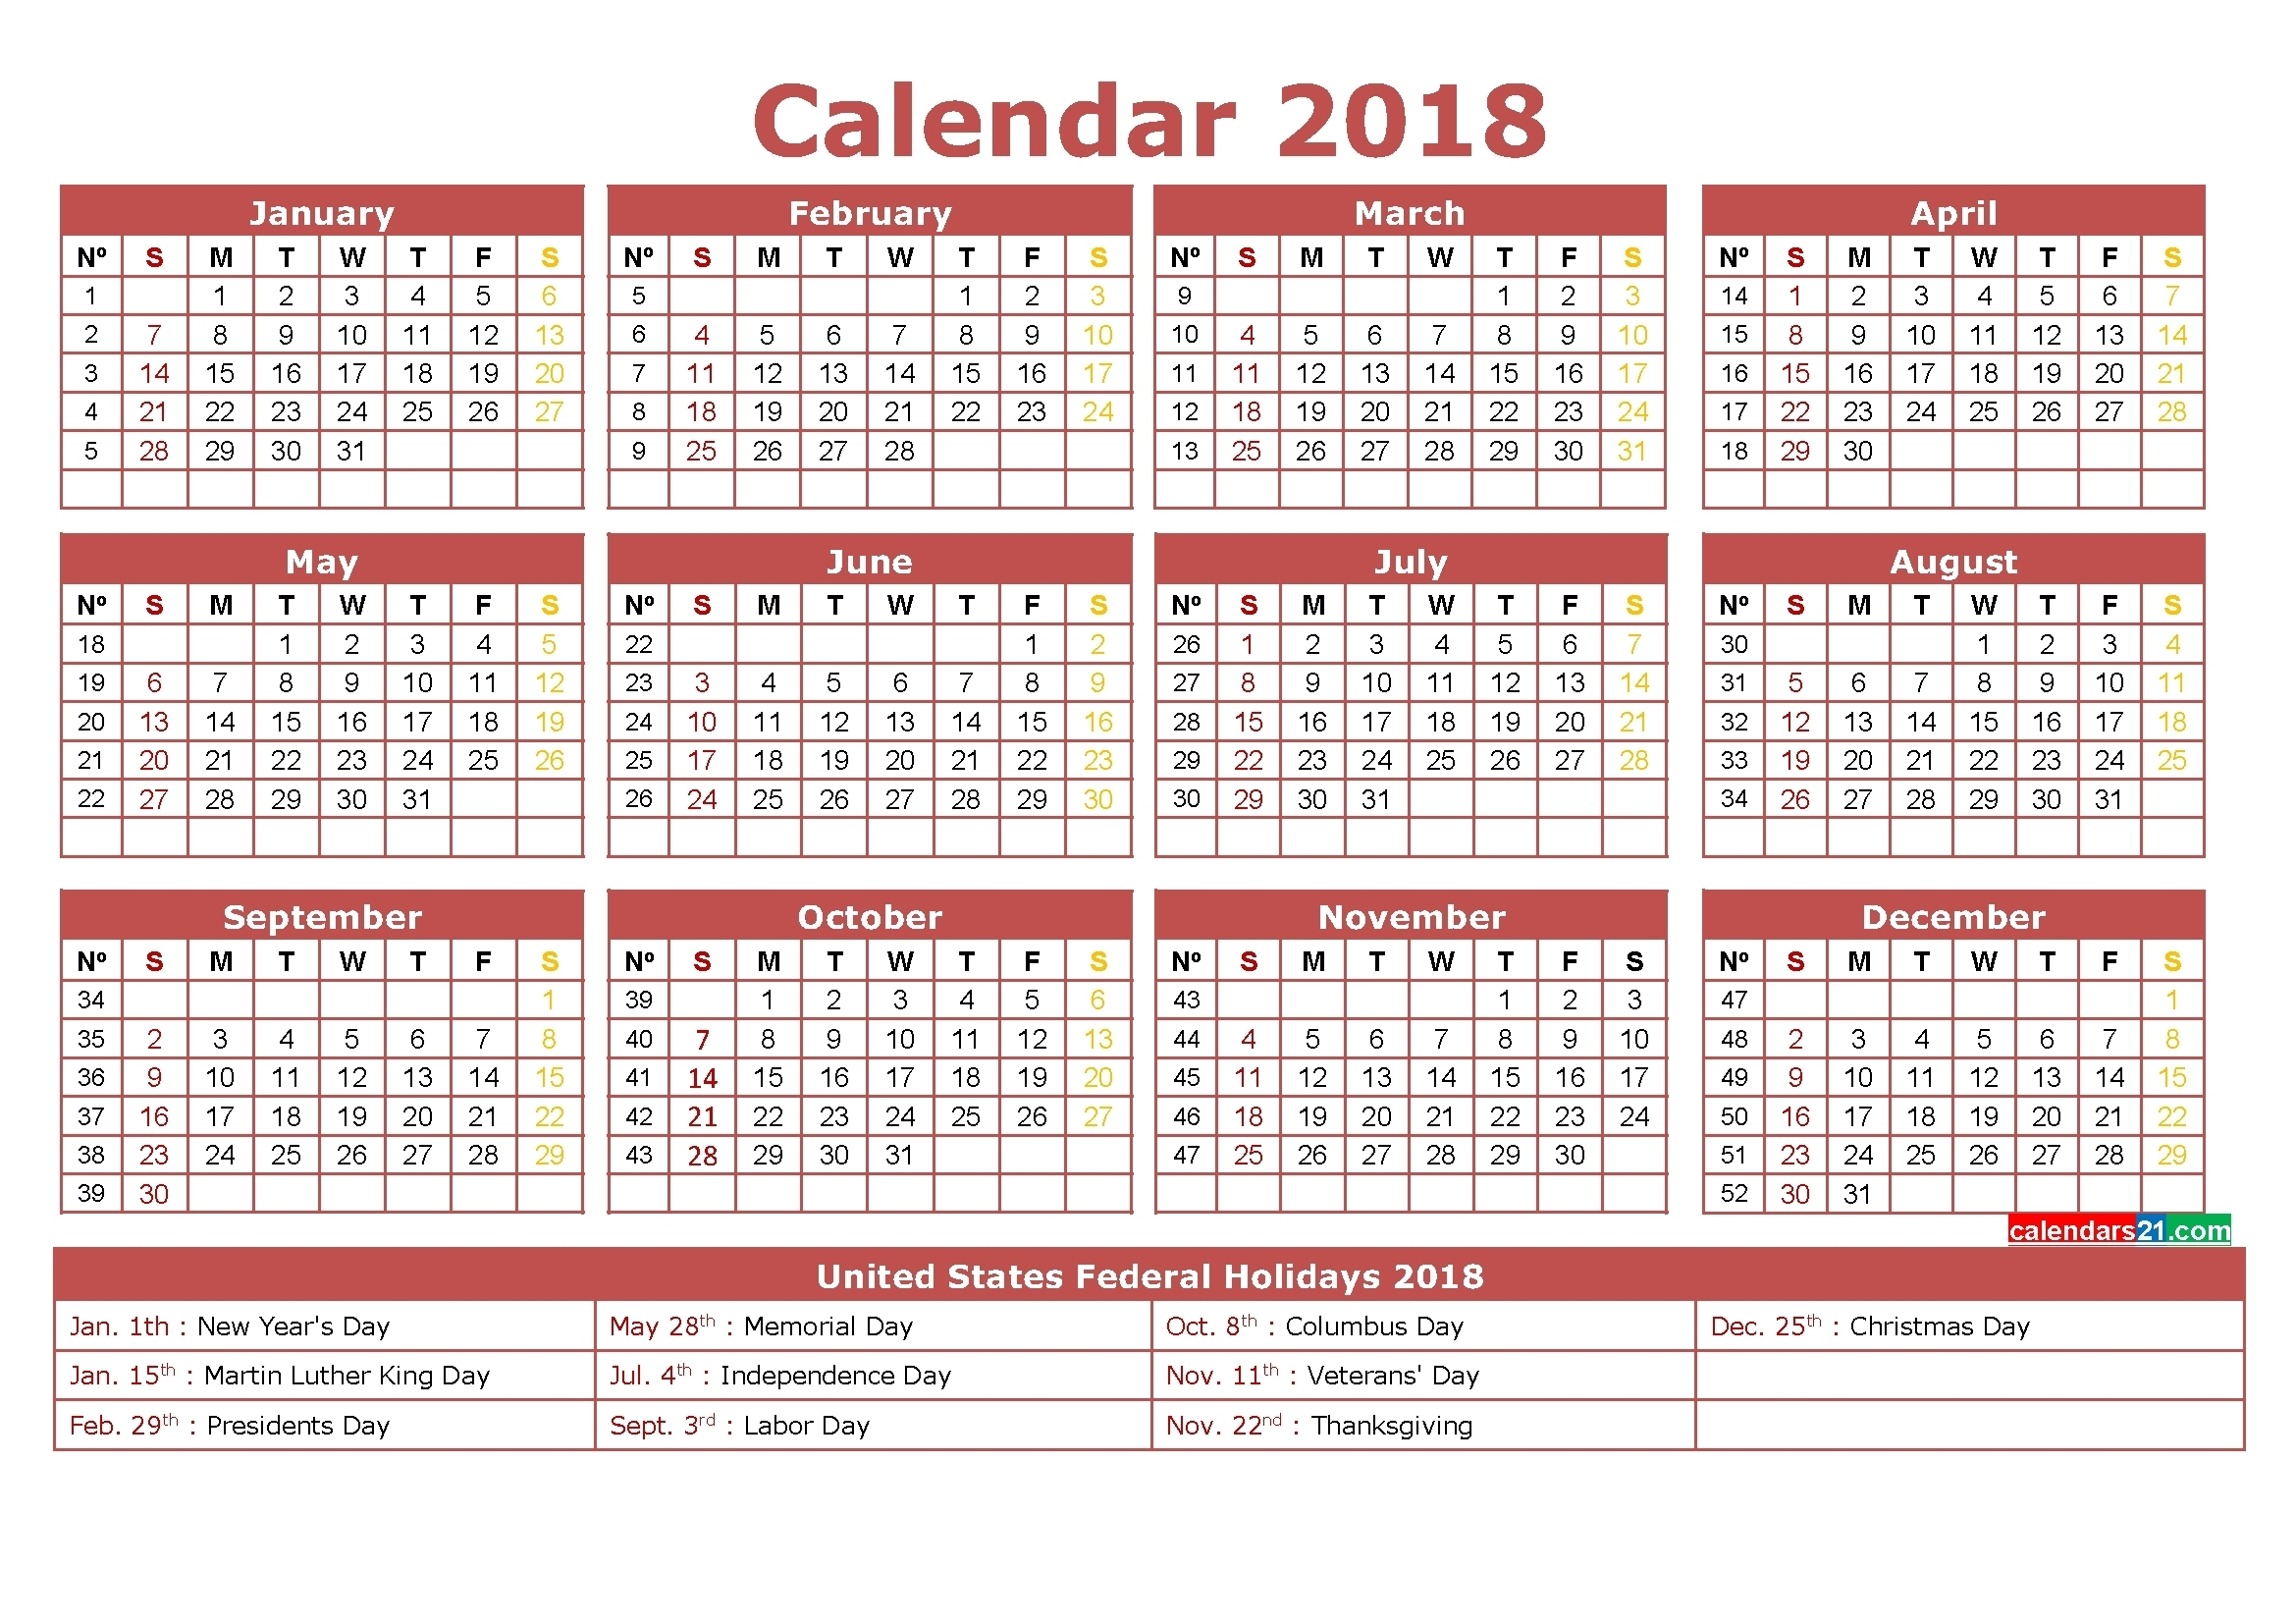 Calendar Template 12 Months One Page • Printable Blank Calendar Template intended for 12 Month Calendar On One Page